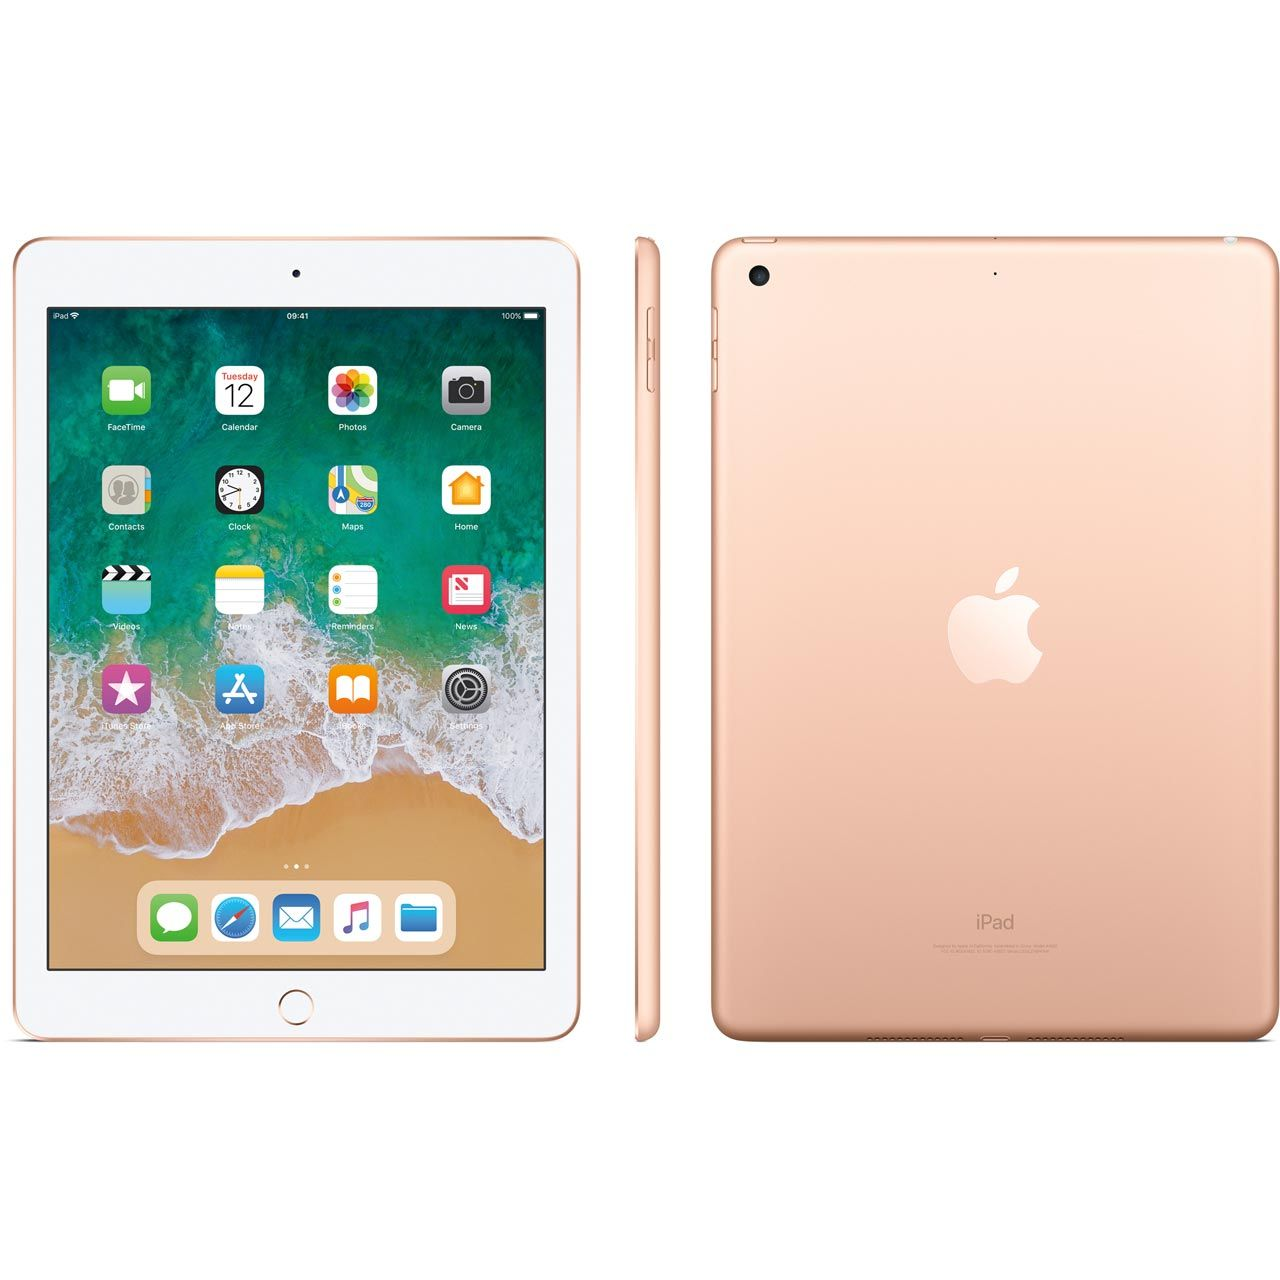 "iPad 6 Apple 128GB Dourado Tela 9.7"" Retina - Proc. Chip A10 Câm. 8MP + Frontal iOS 11 Touch ID"